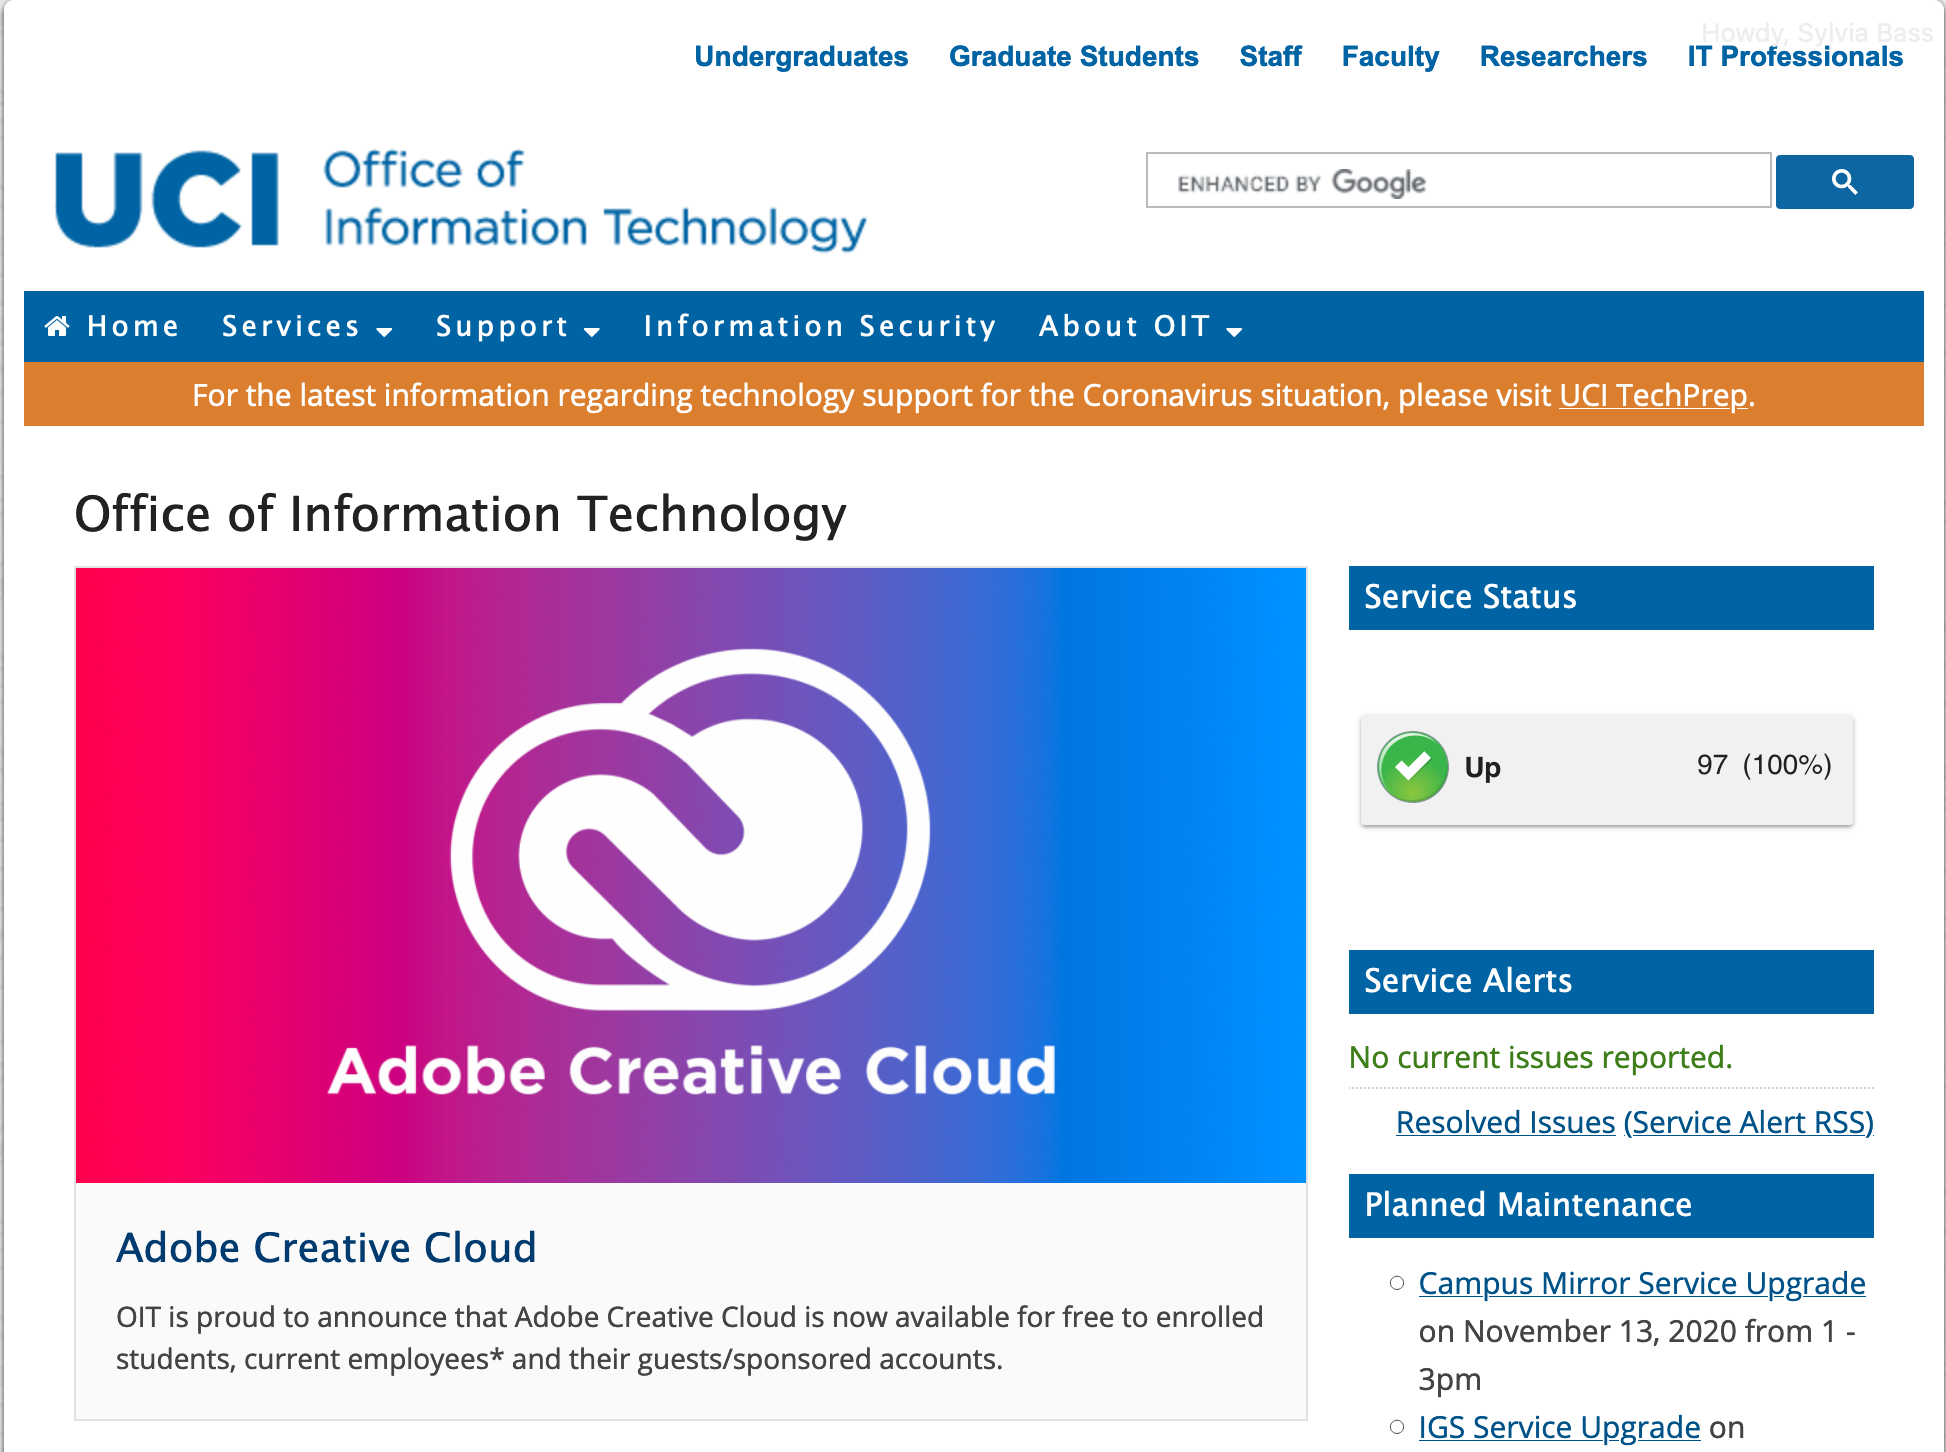 Office of Information Technology website